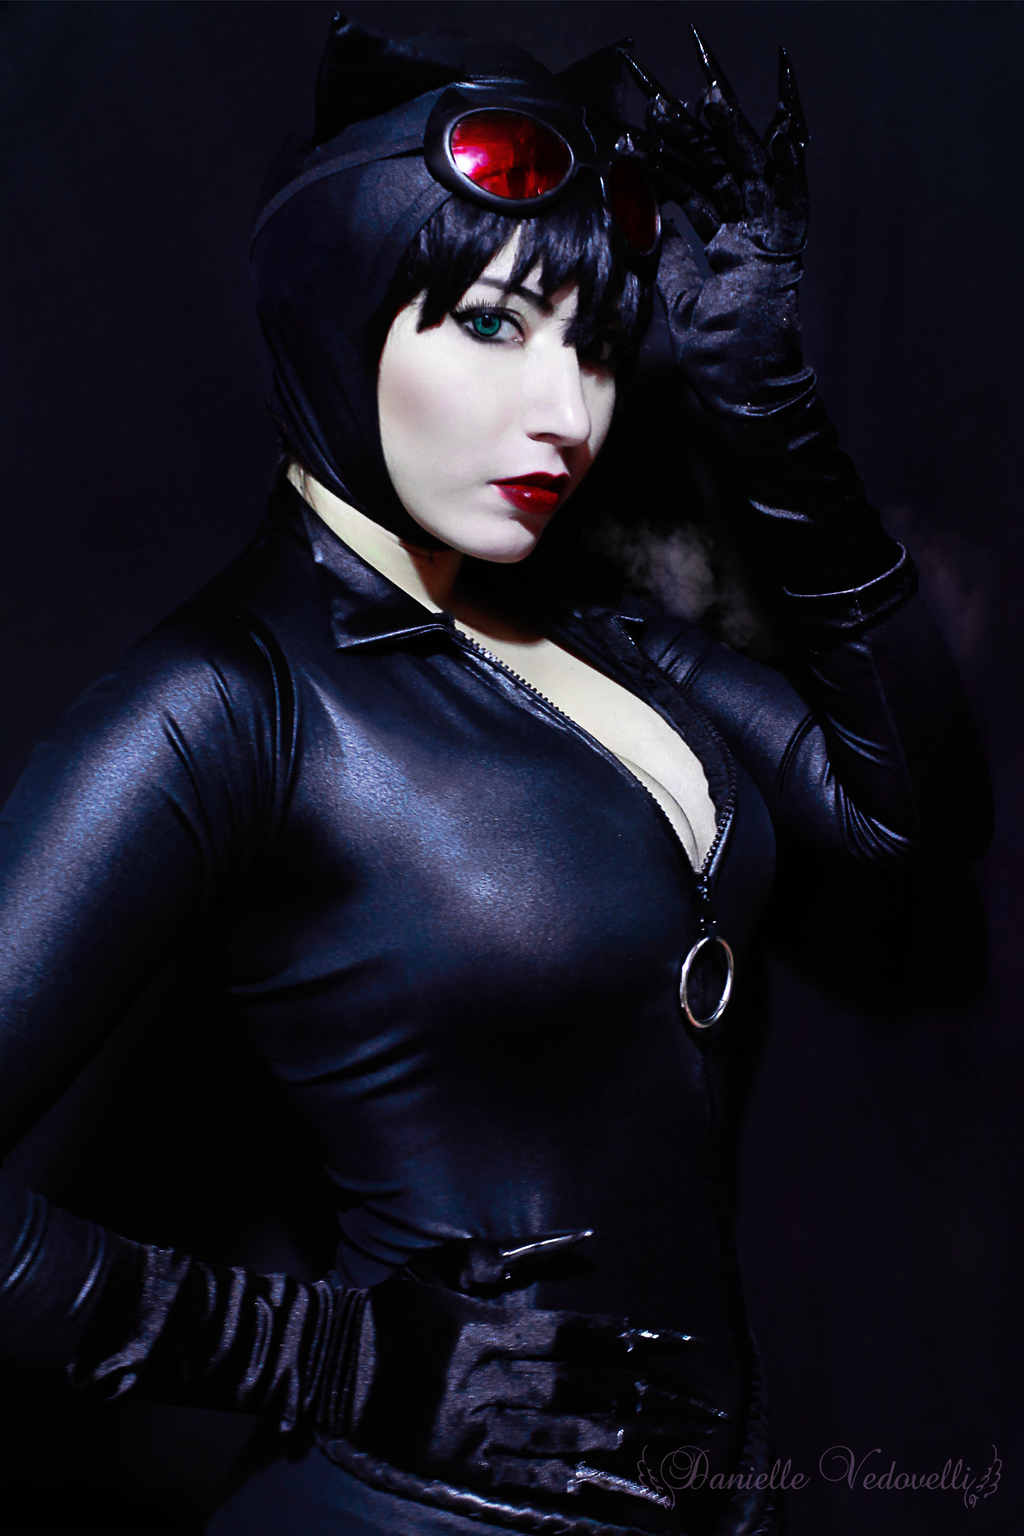 Danielle Vedovelli  is Catwoman — Photo by Eve, The Bard